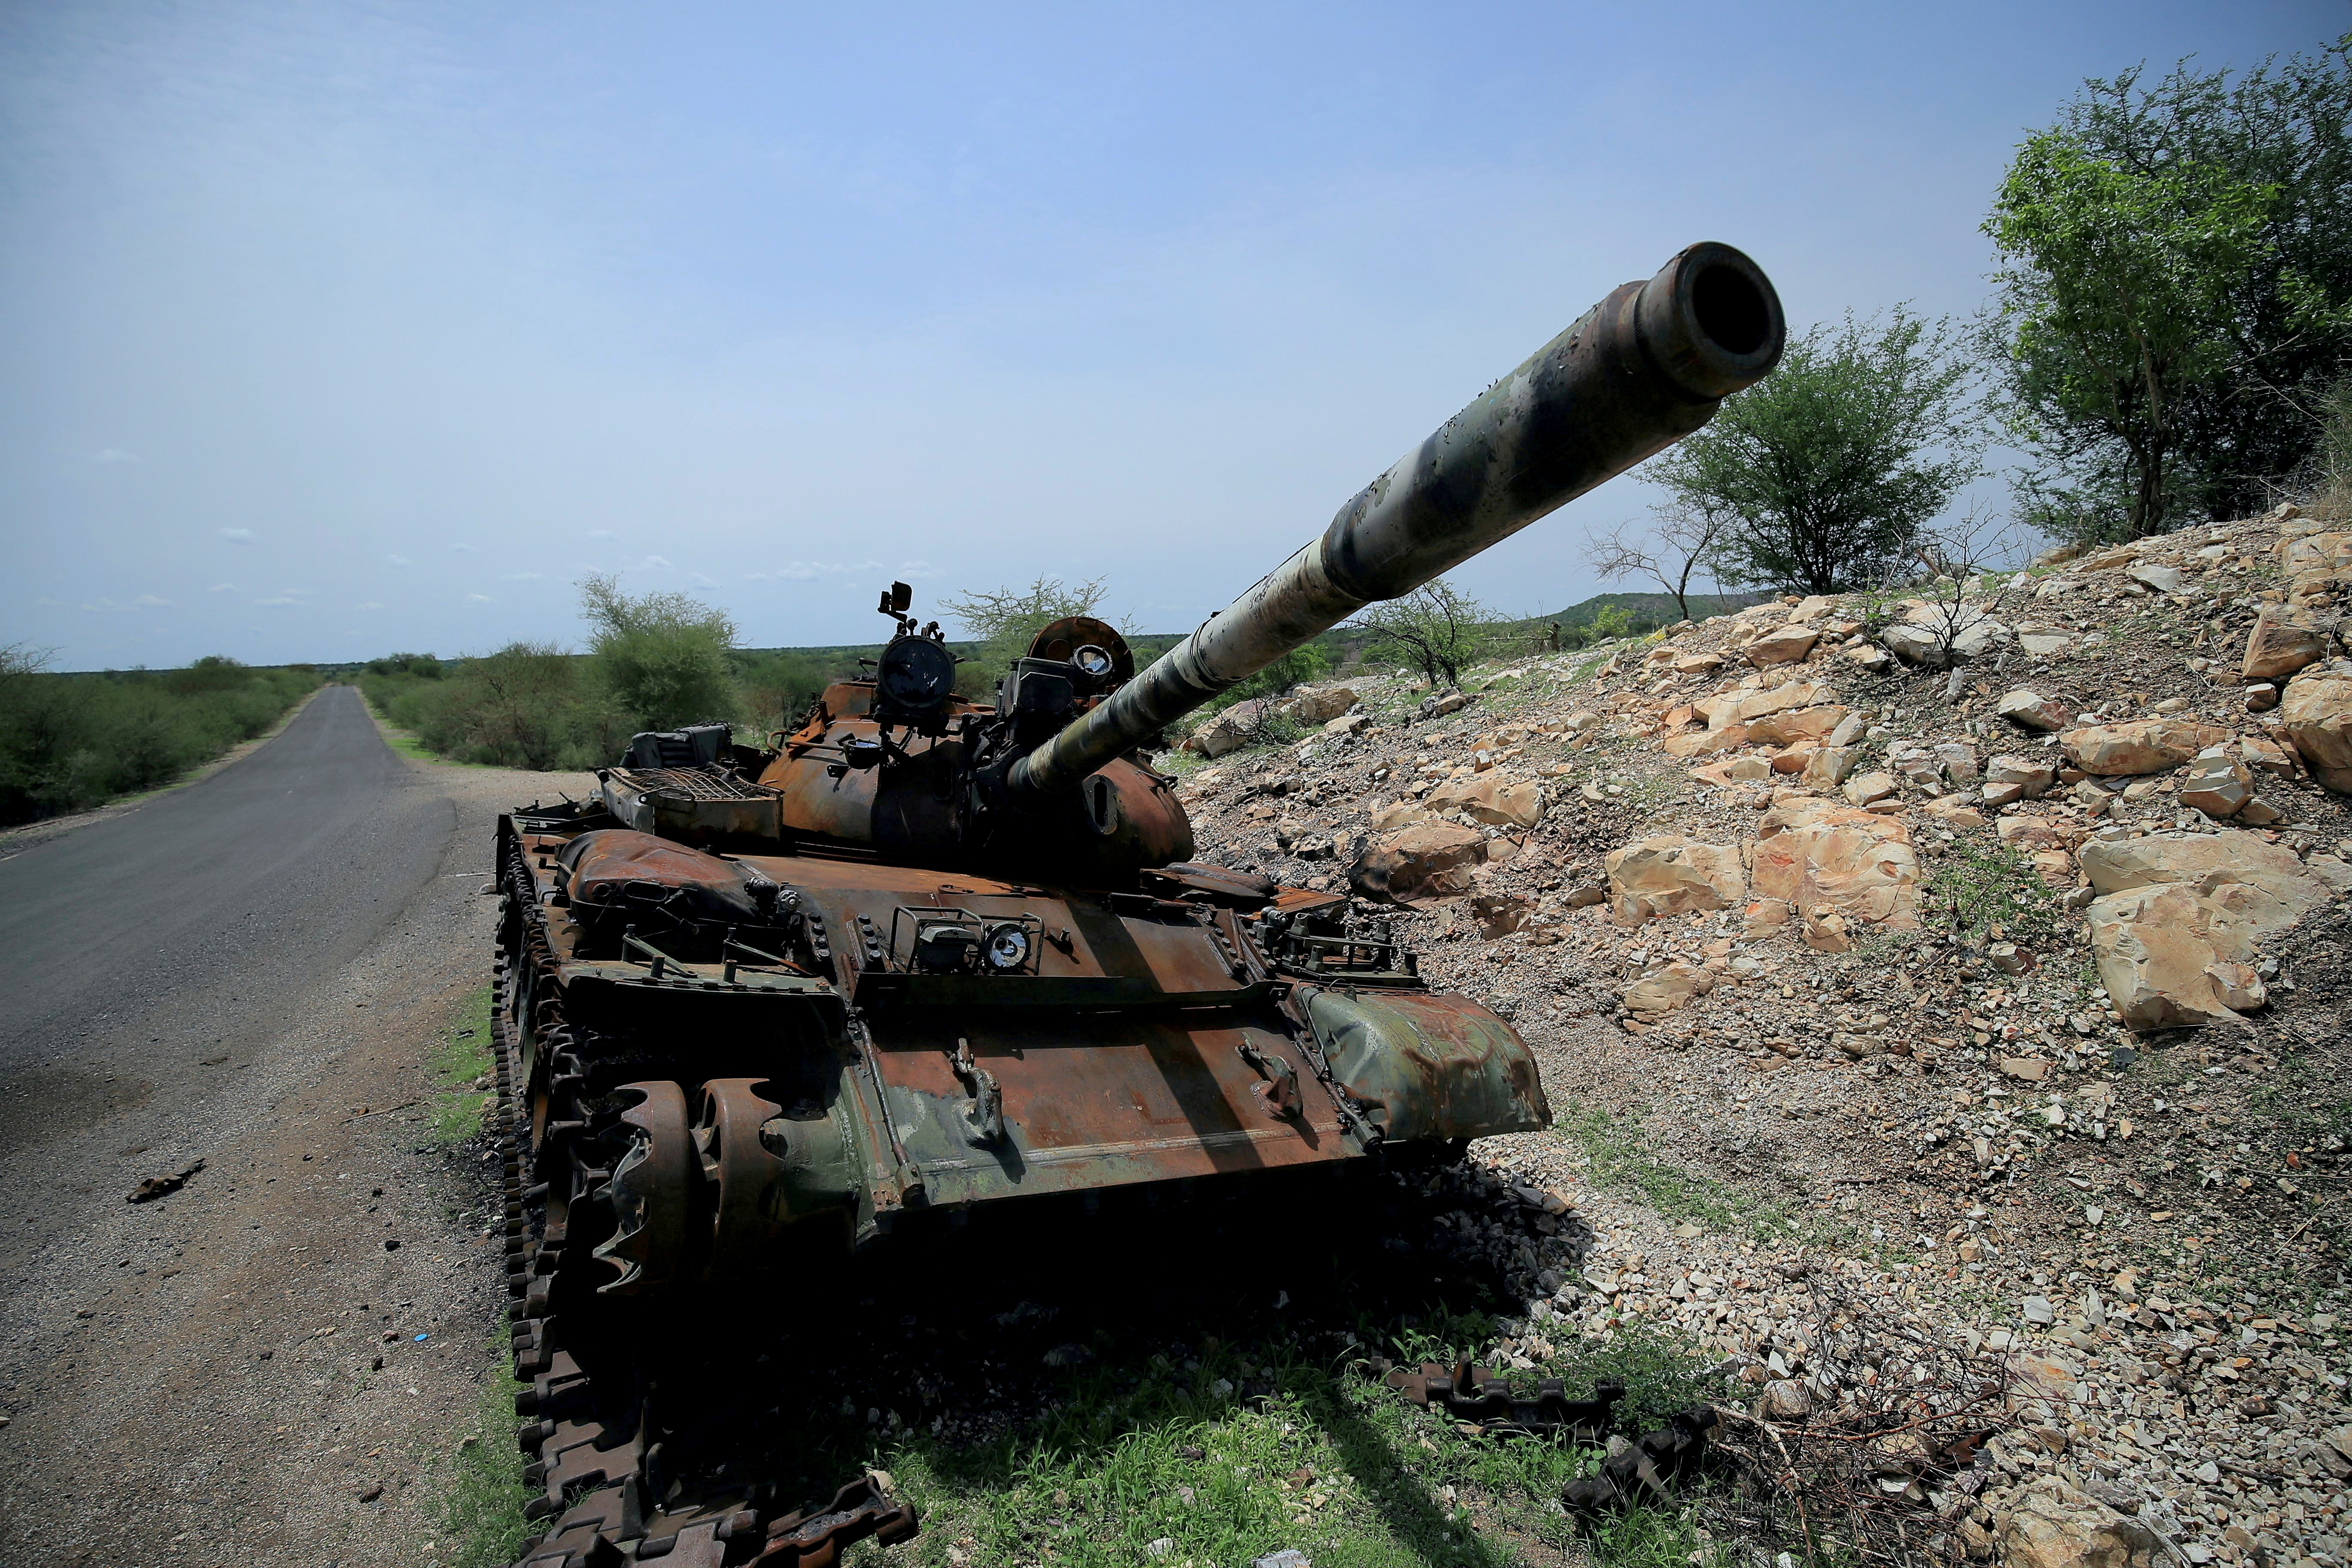 A tank damaged during the fighting between Ethiopia's National Defense Force (ENDF) and Tigray Special Forces stands on the outskirts of Humera town in Ethiopia, July 1, 2021.  REUTERS/Stringer/File Photo